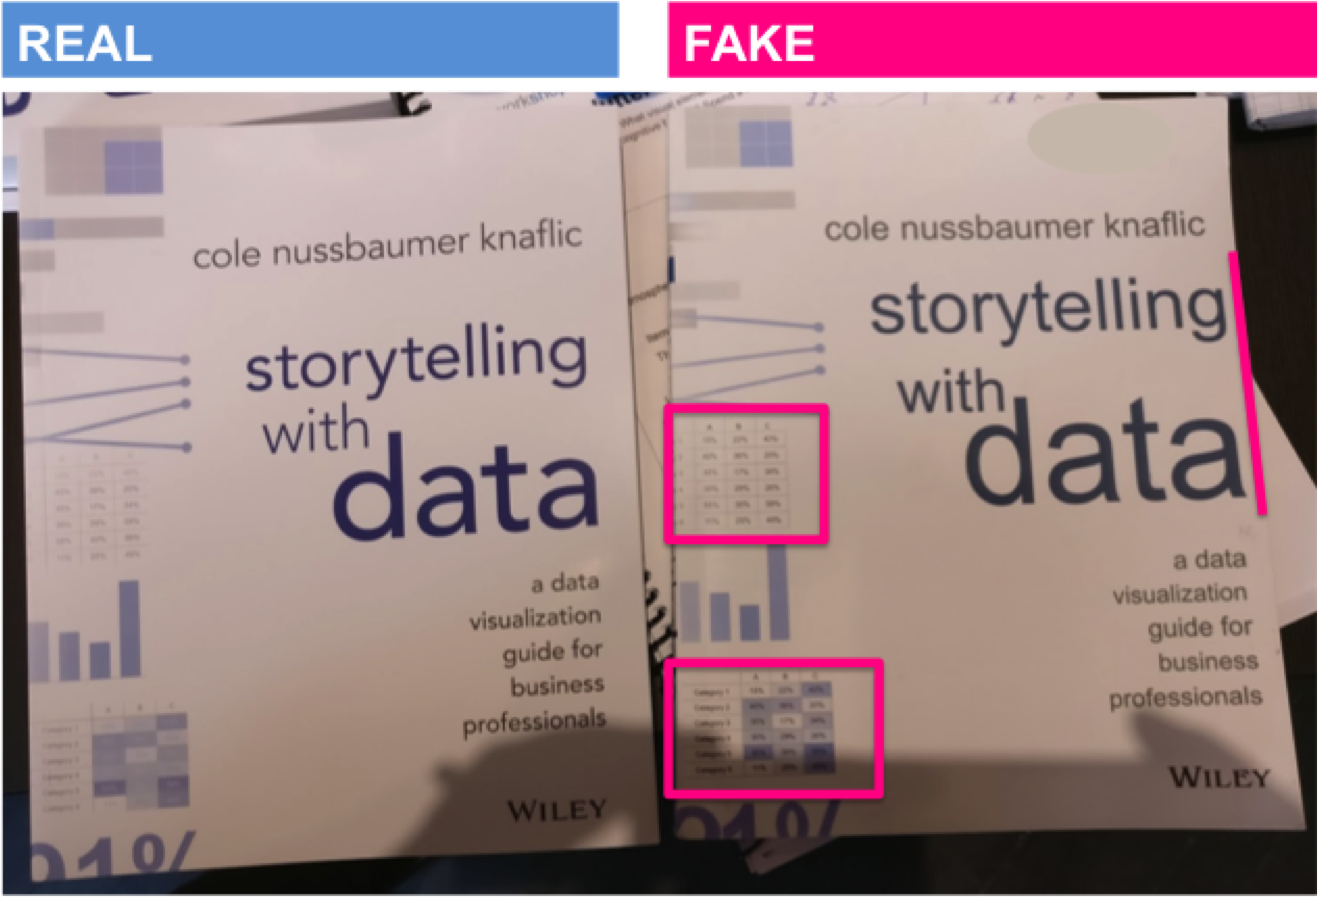 FRONT COVER : Paper of fake version is yellowish instead of bright white, text  storytelling with data is stretched, and there are variances in artwork formatting (pronounced borders in table,different text color in heatmap).